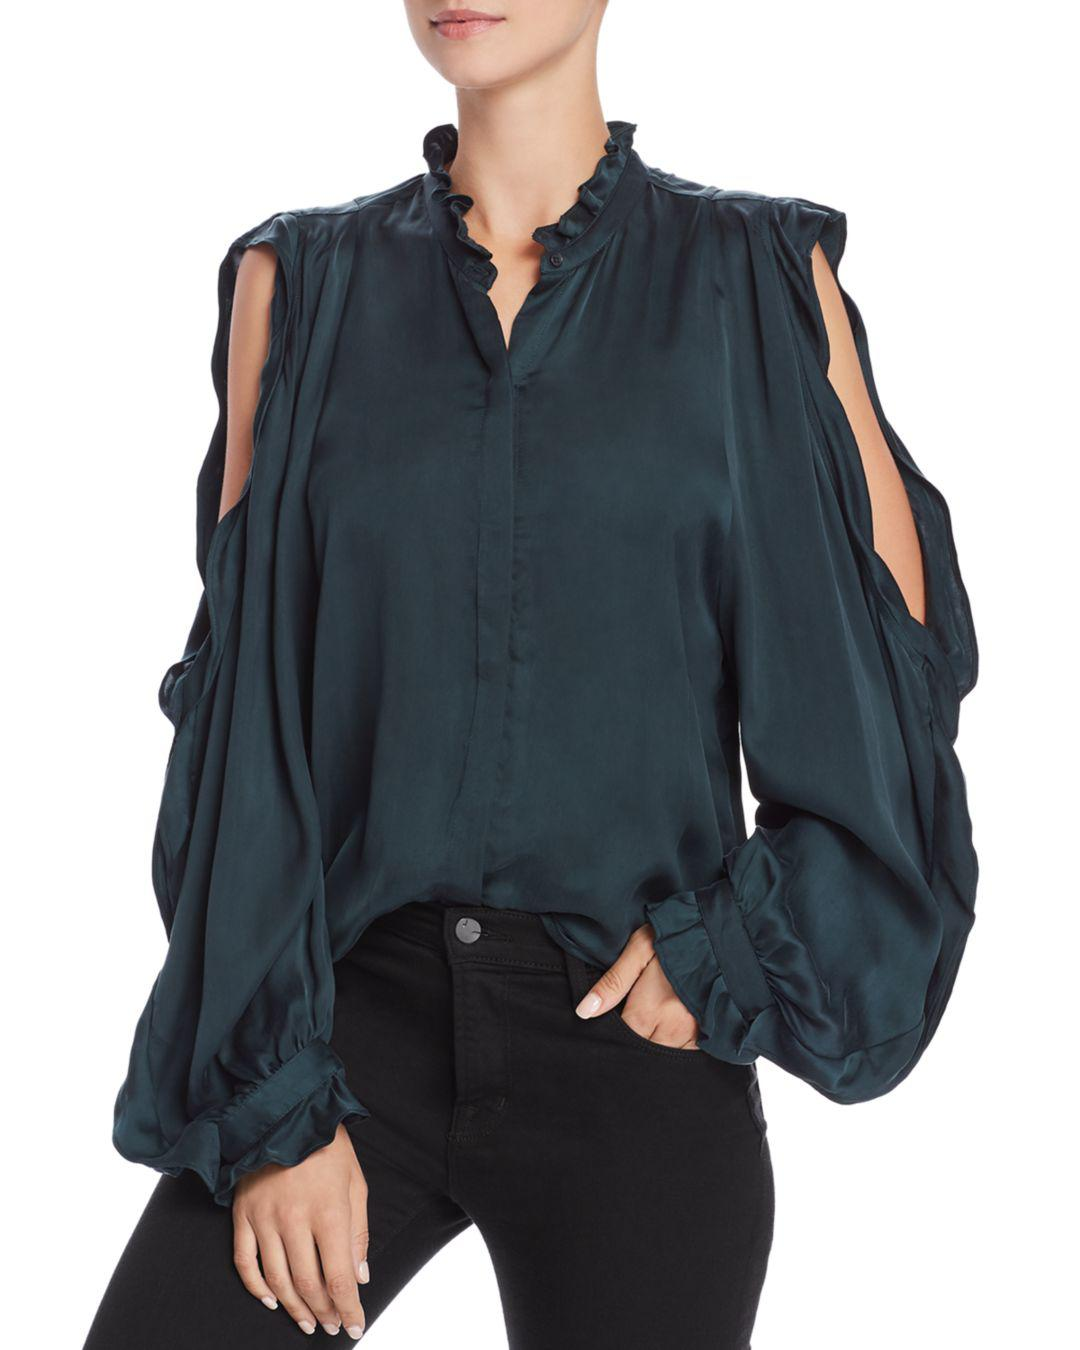 da2455c4c7c52 Lyst - 7 For All Mankind Cold-shoulder Ruffle Shirt in Green